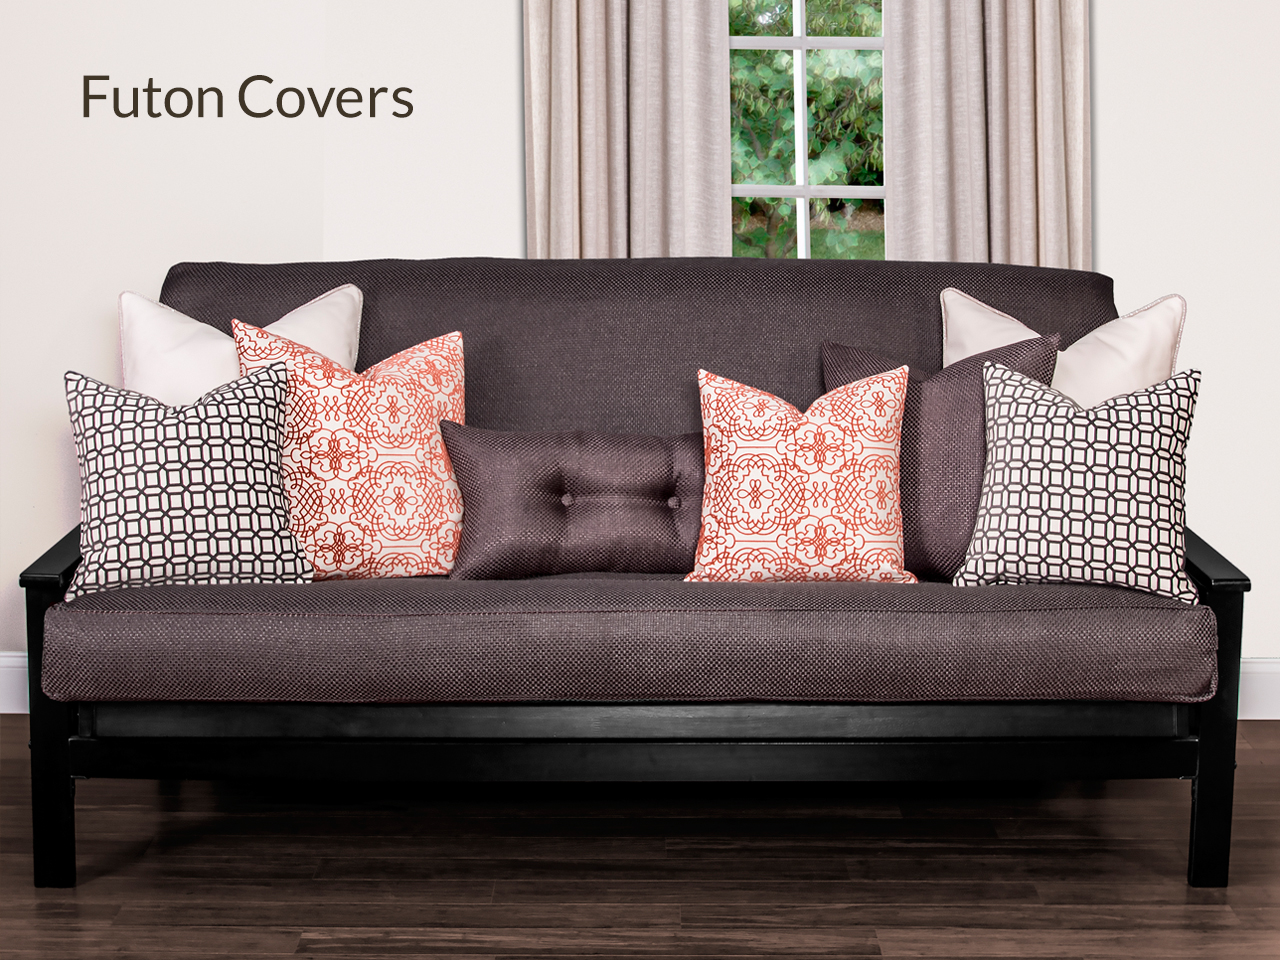 chair covers and more houston event chairs for sale futon archives right futons waterbeds